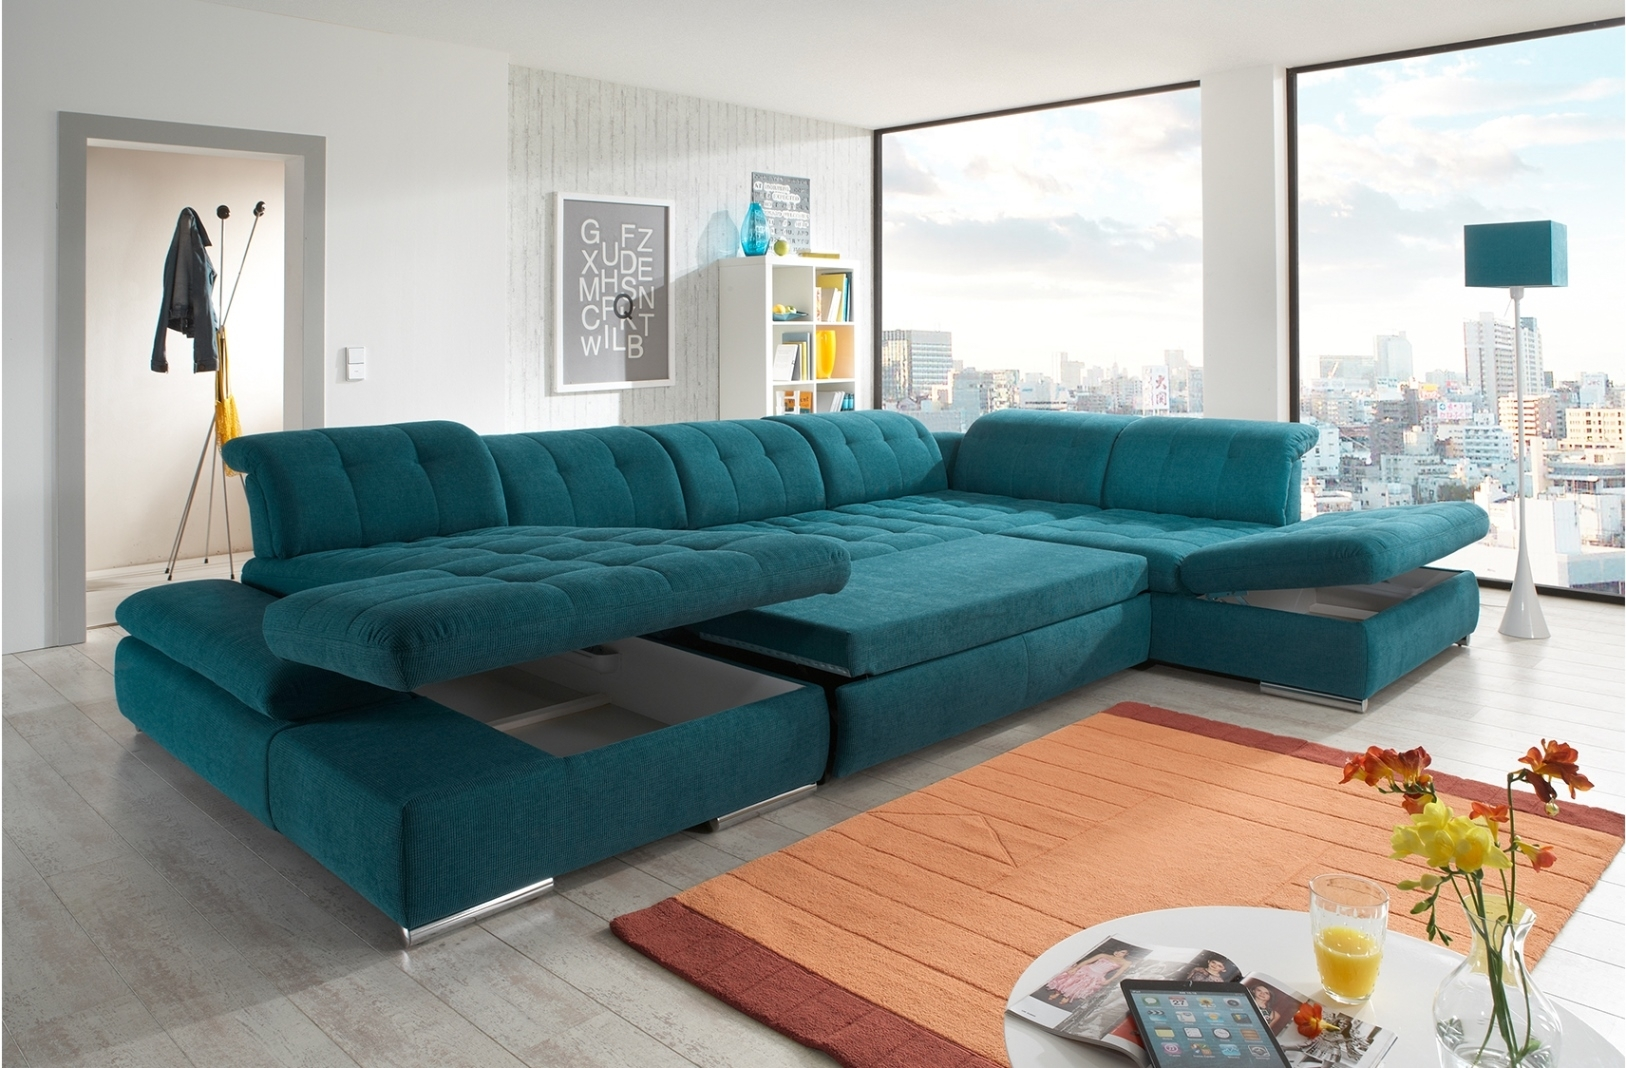 Elegant Teal Sectional Sofa 20 Sofa Table Ideas With Teal Sectional Sofa Regarding Guelph Sectional Sofas (Image 4 of 10)